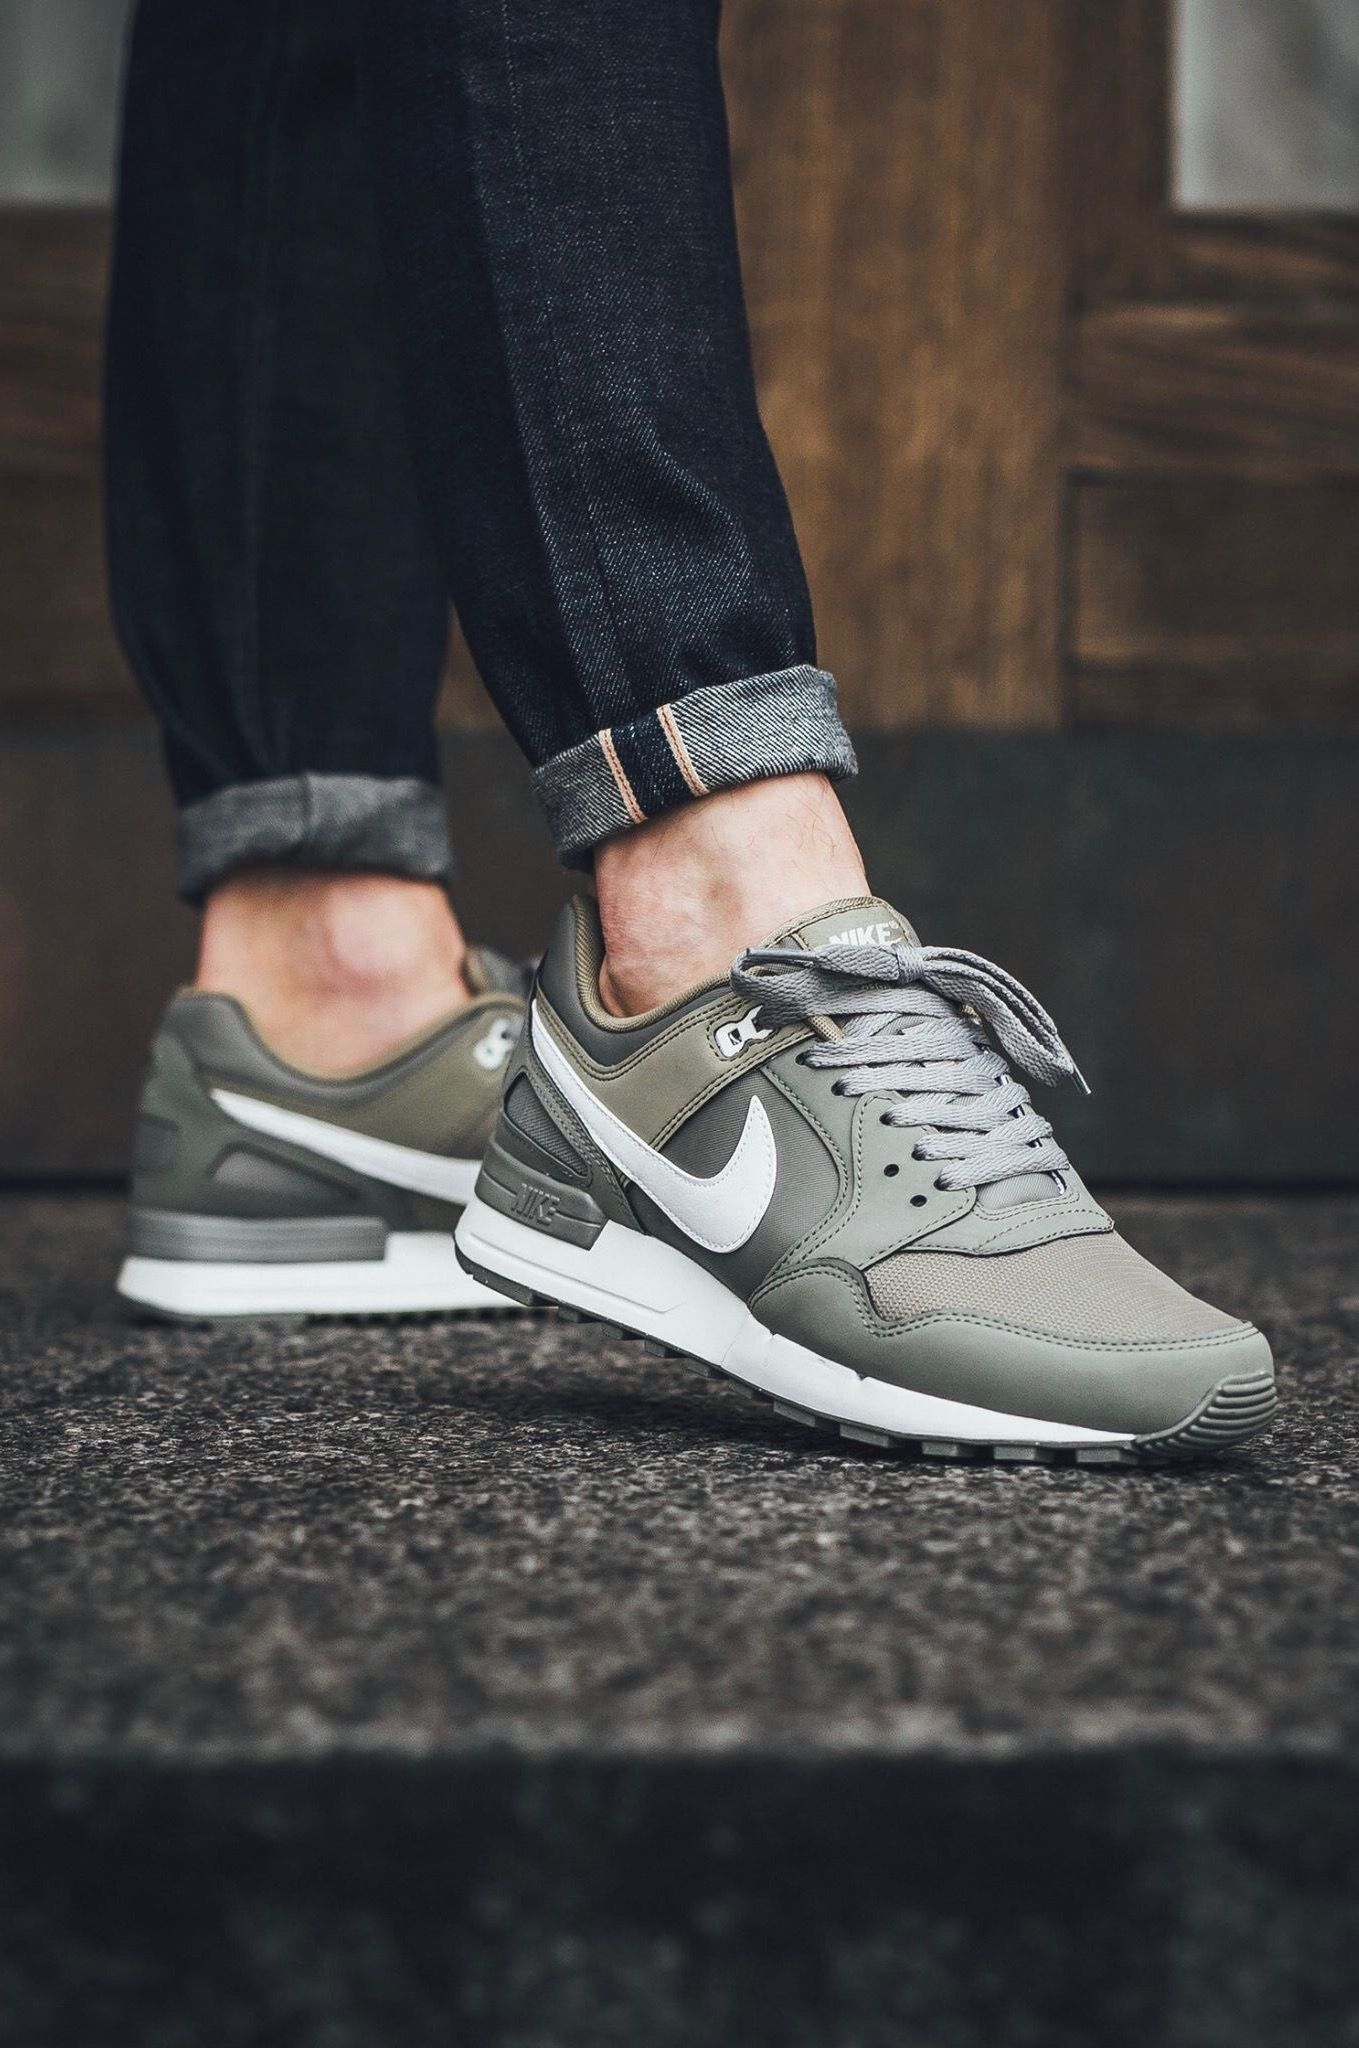 Nike Air Pegasus 89 | Sneakers men fashion, Sneaker slippers ...